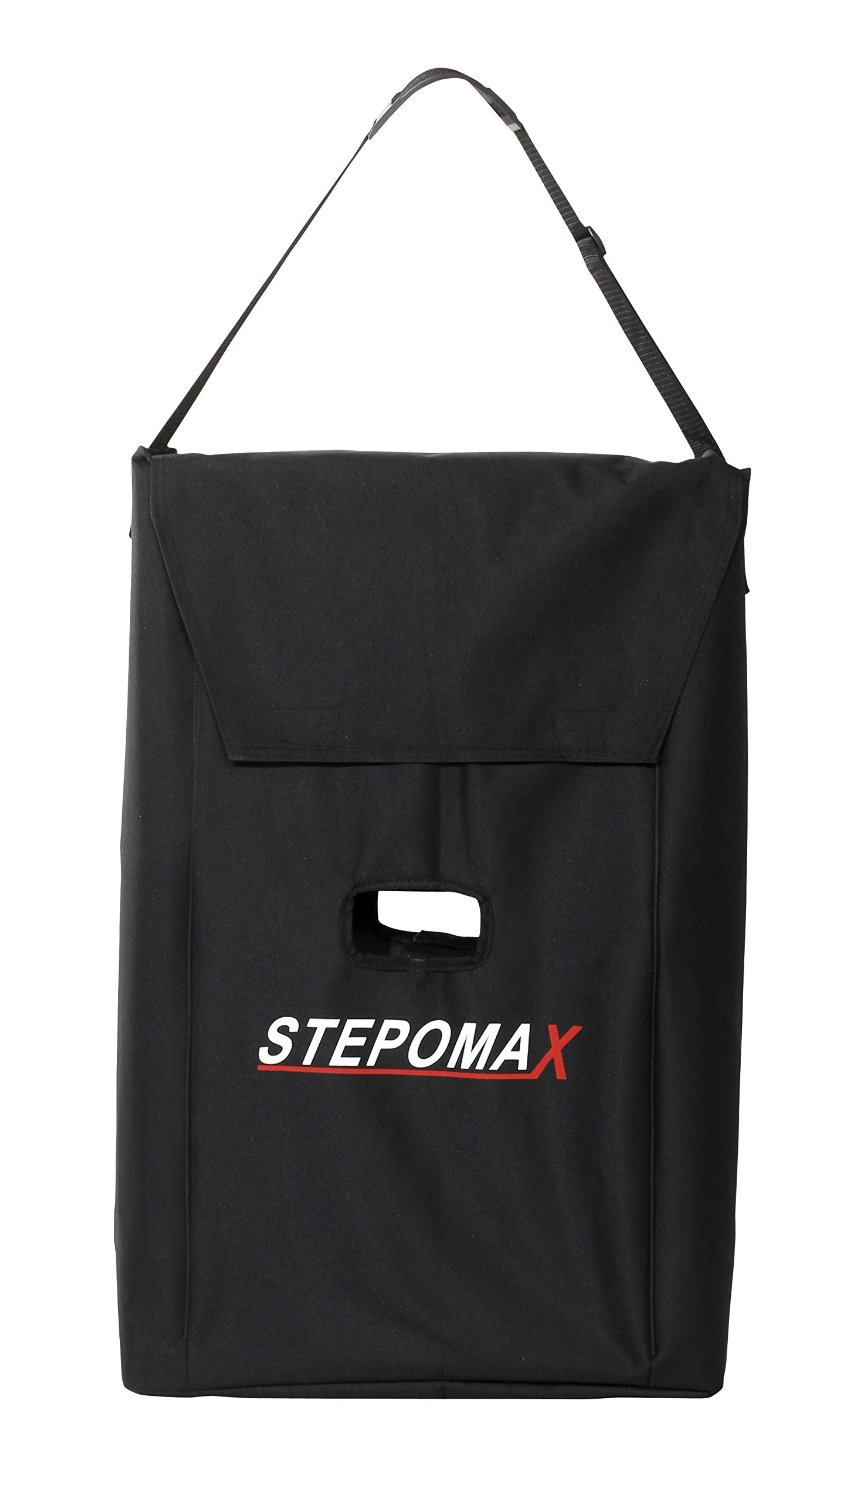 echelle-telescopique-3m80 -stepomax-sac